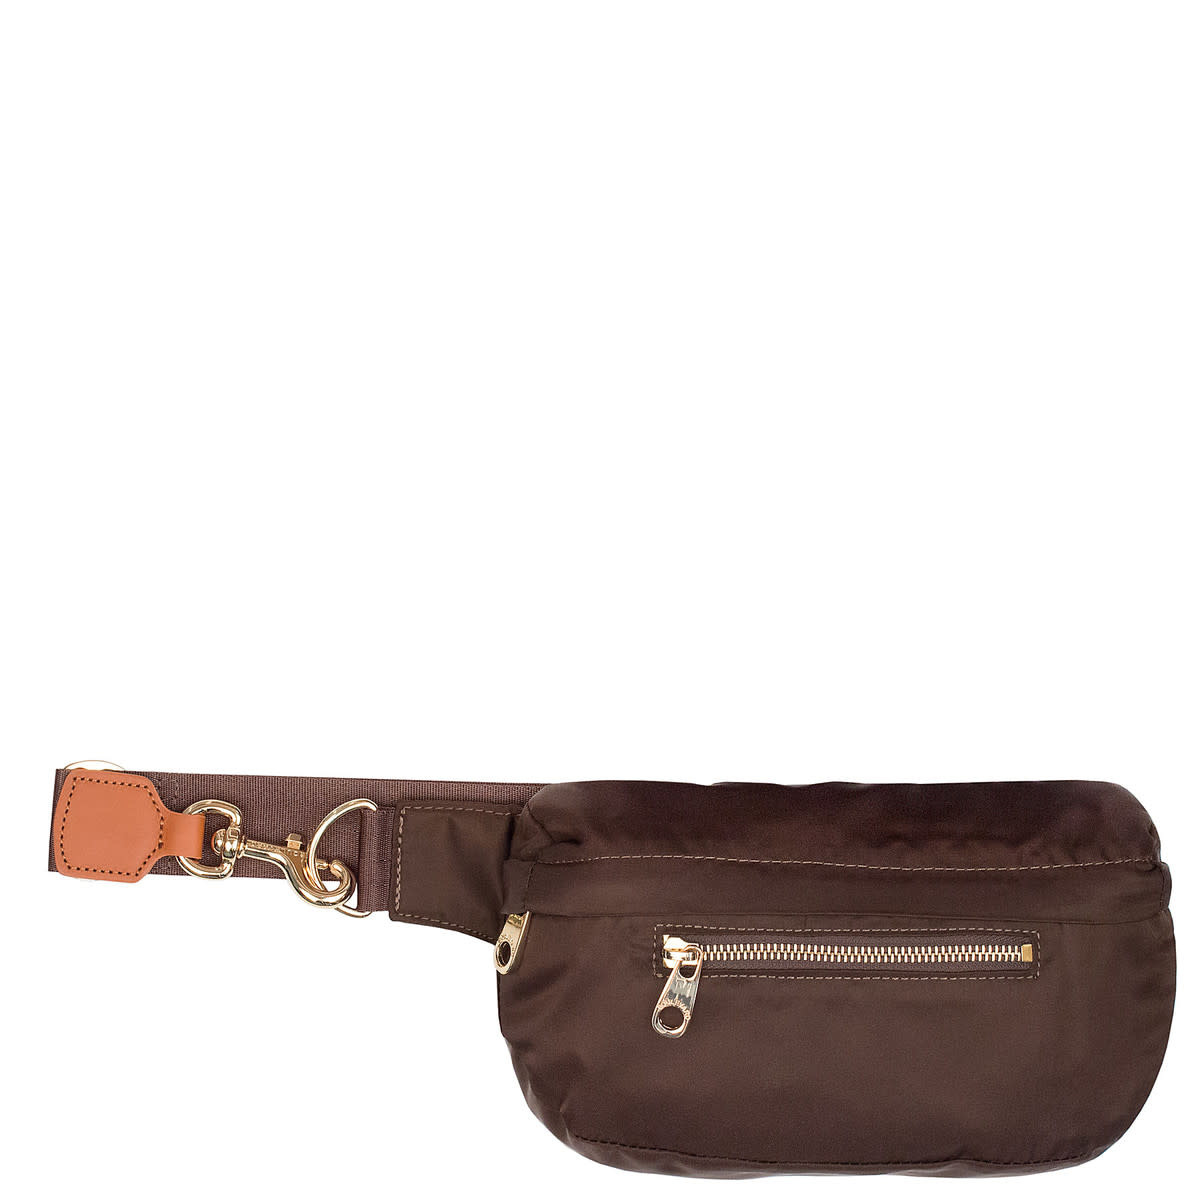 Boulevard Franny Fanny Pack Cocoa Large